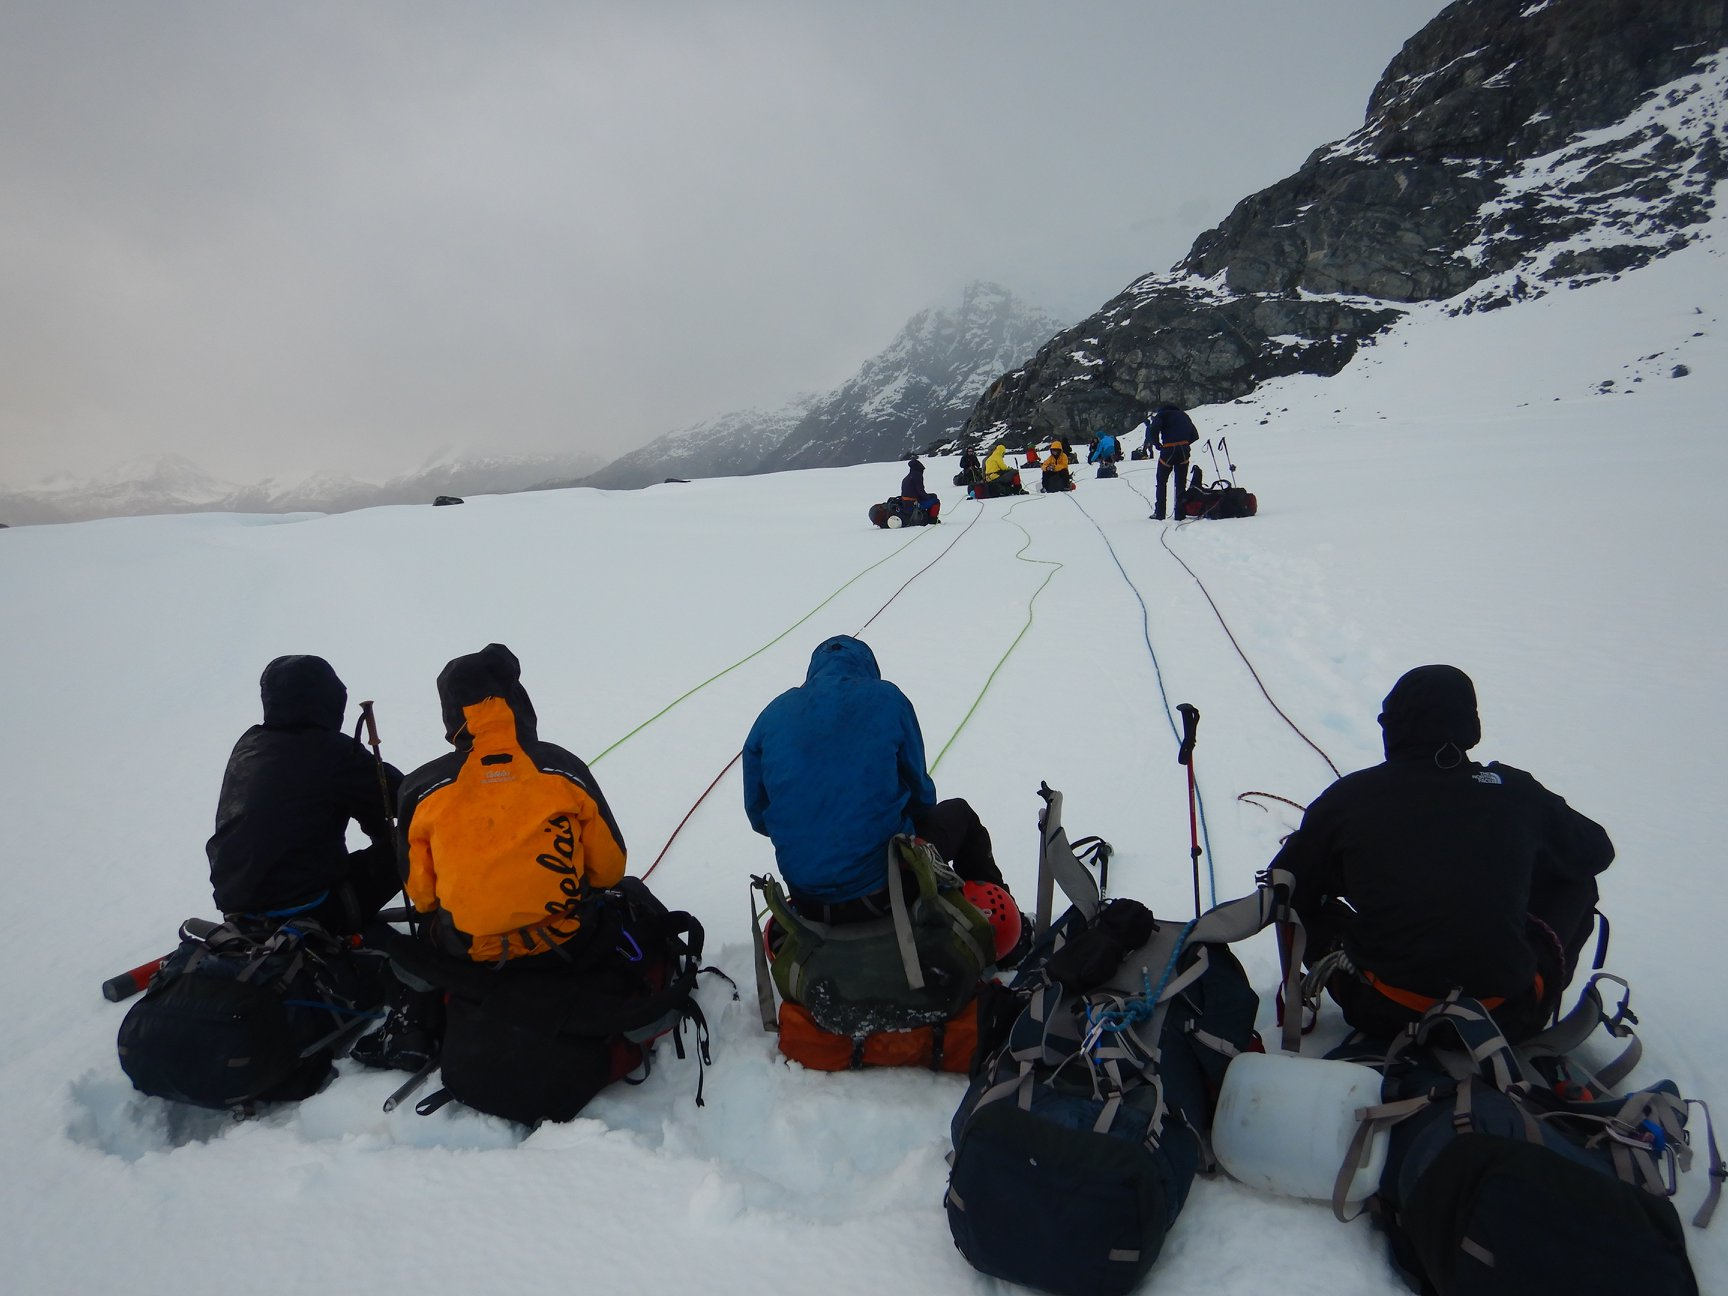 Four rope teams take a break on a glacier covered in snow